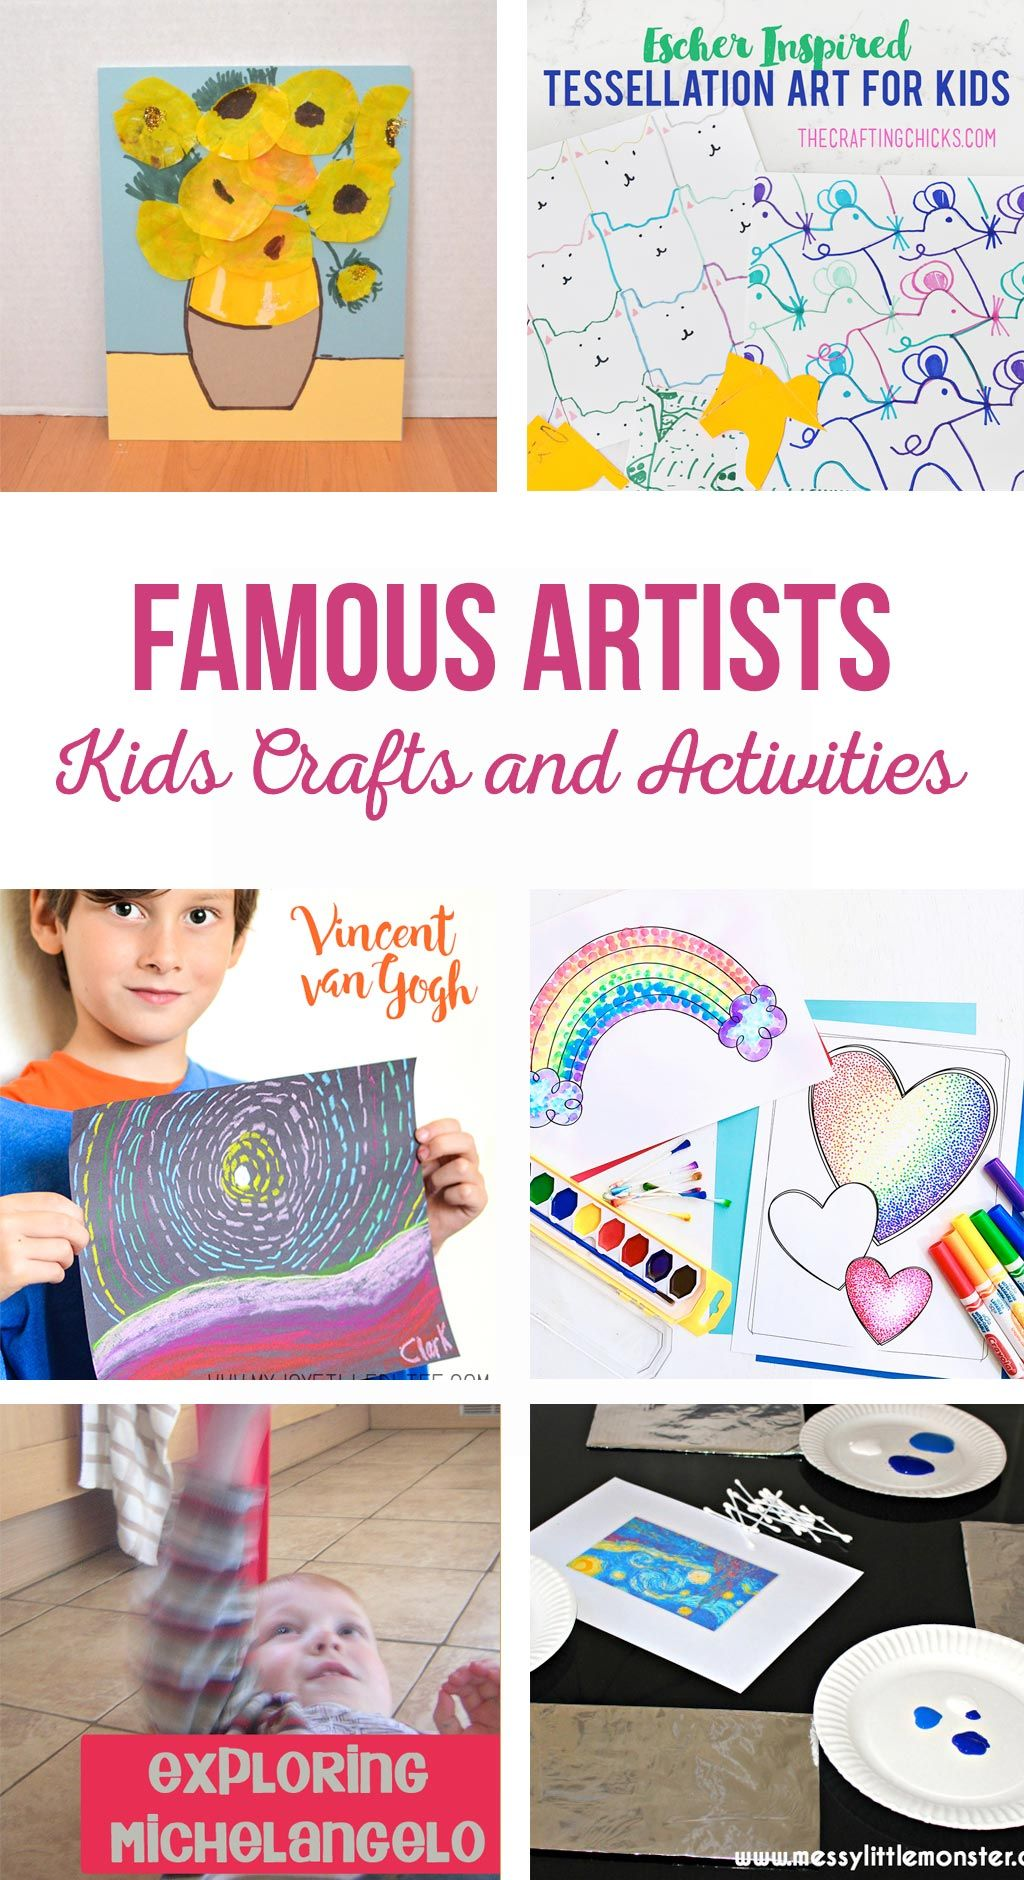 Photo of Famous Artists Kids Crafts and Activities – The Crafting Chicks